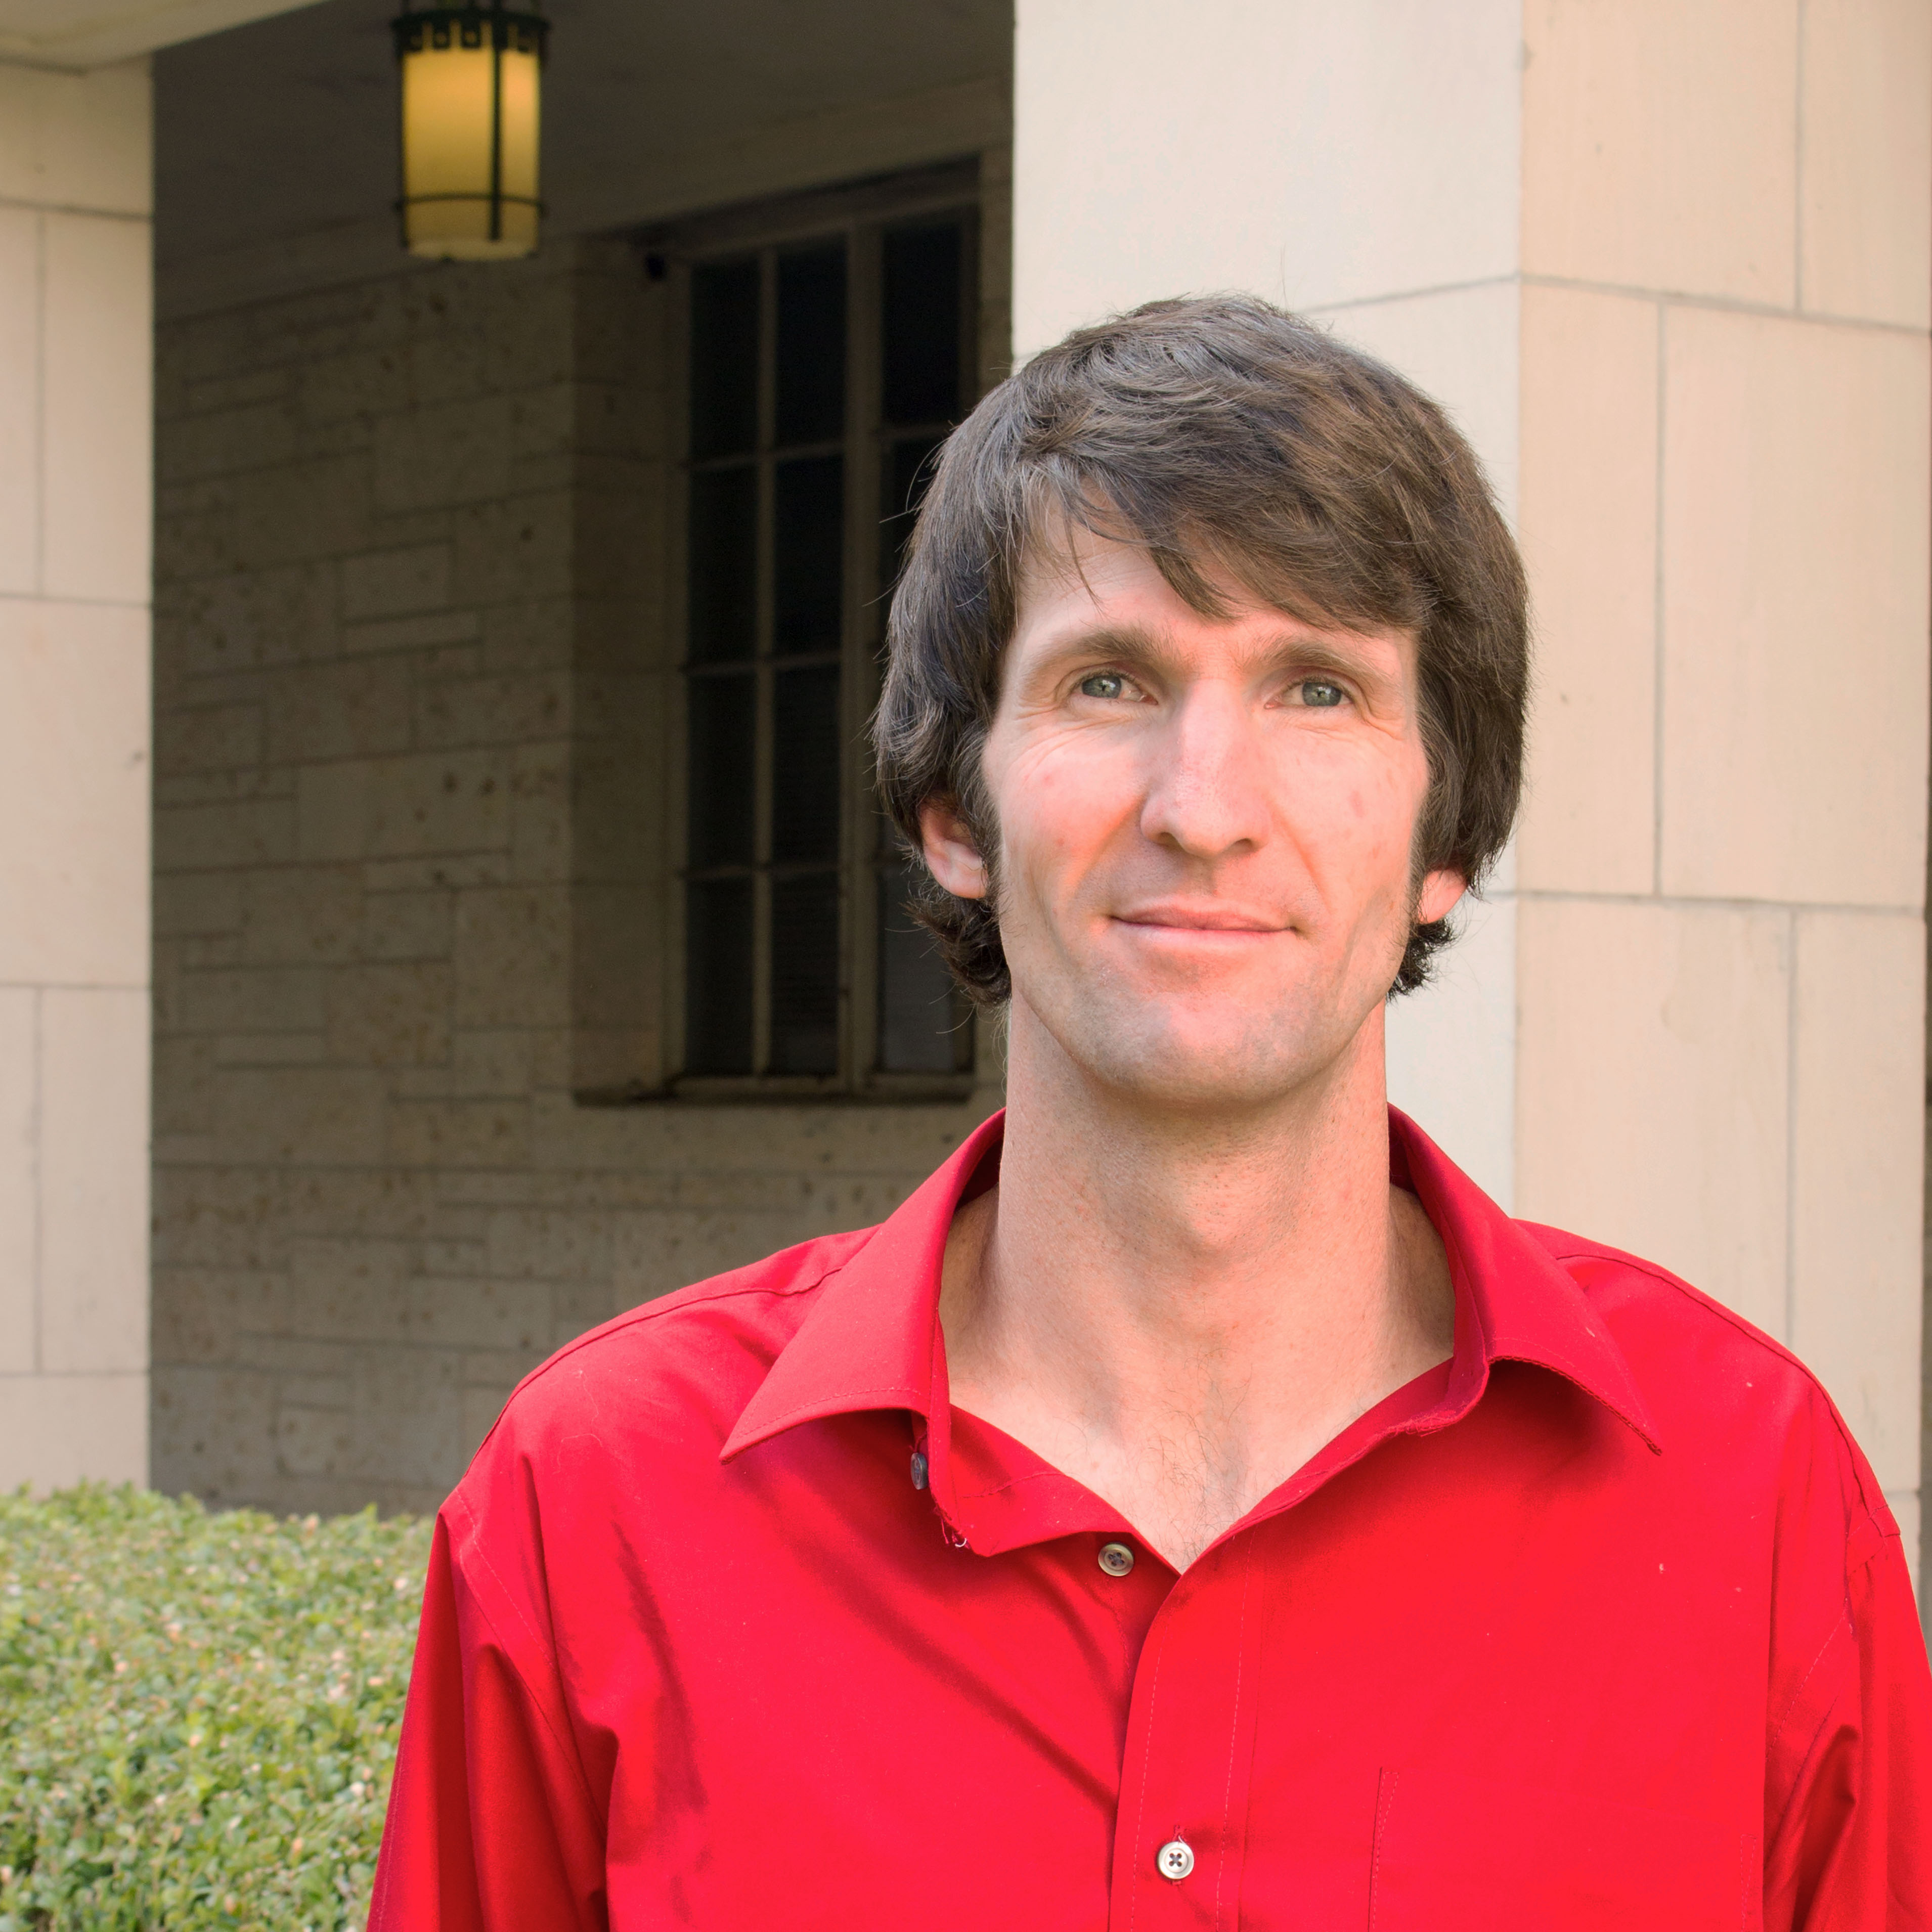 Headshot of DWRL Staffer Justin Hatch